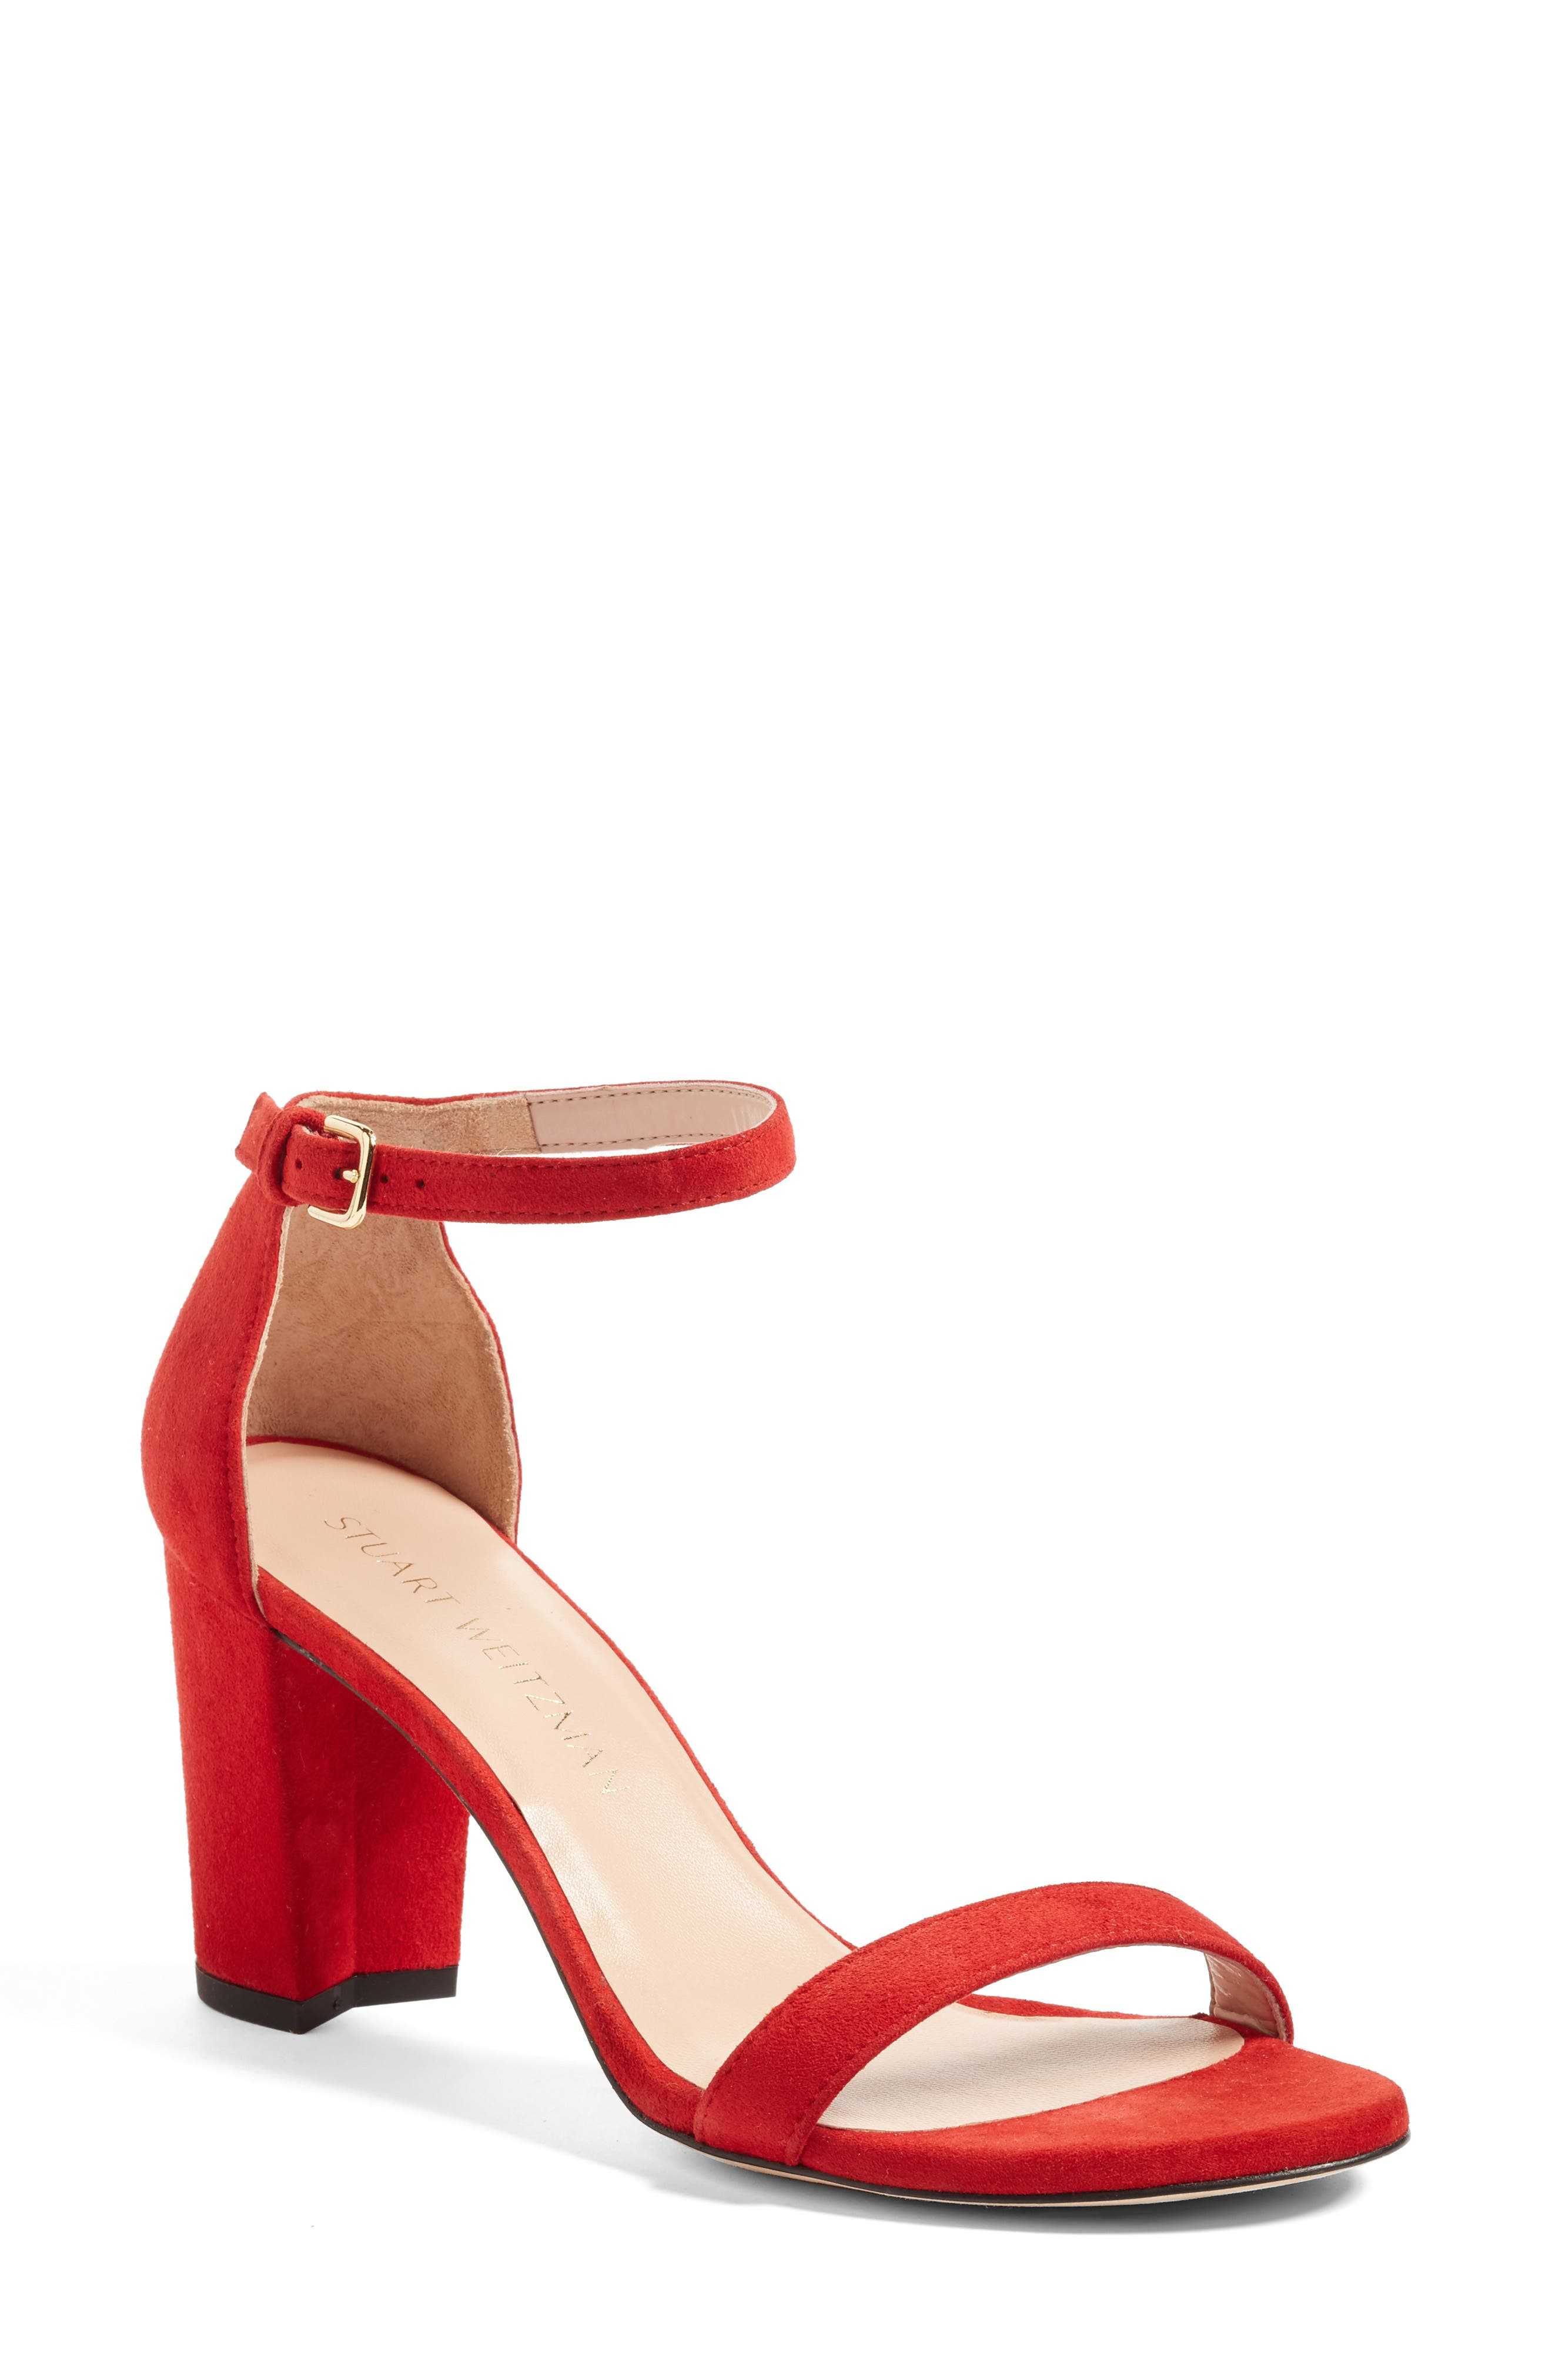 NearlyNude Ankle Strap Sandal,                             Alternate thumbnail 53, color,